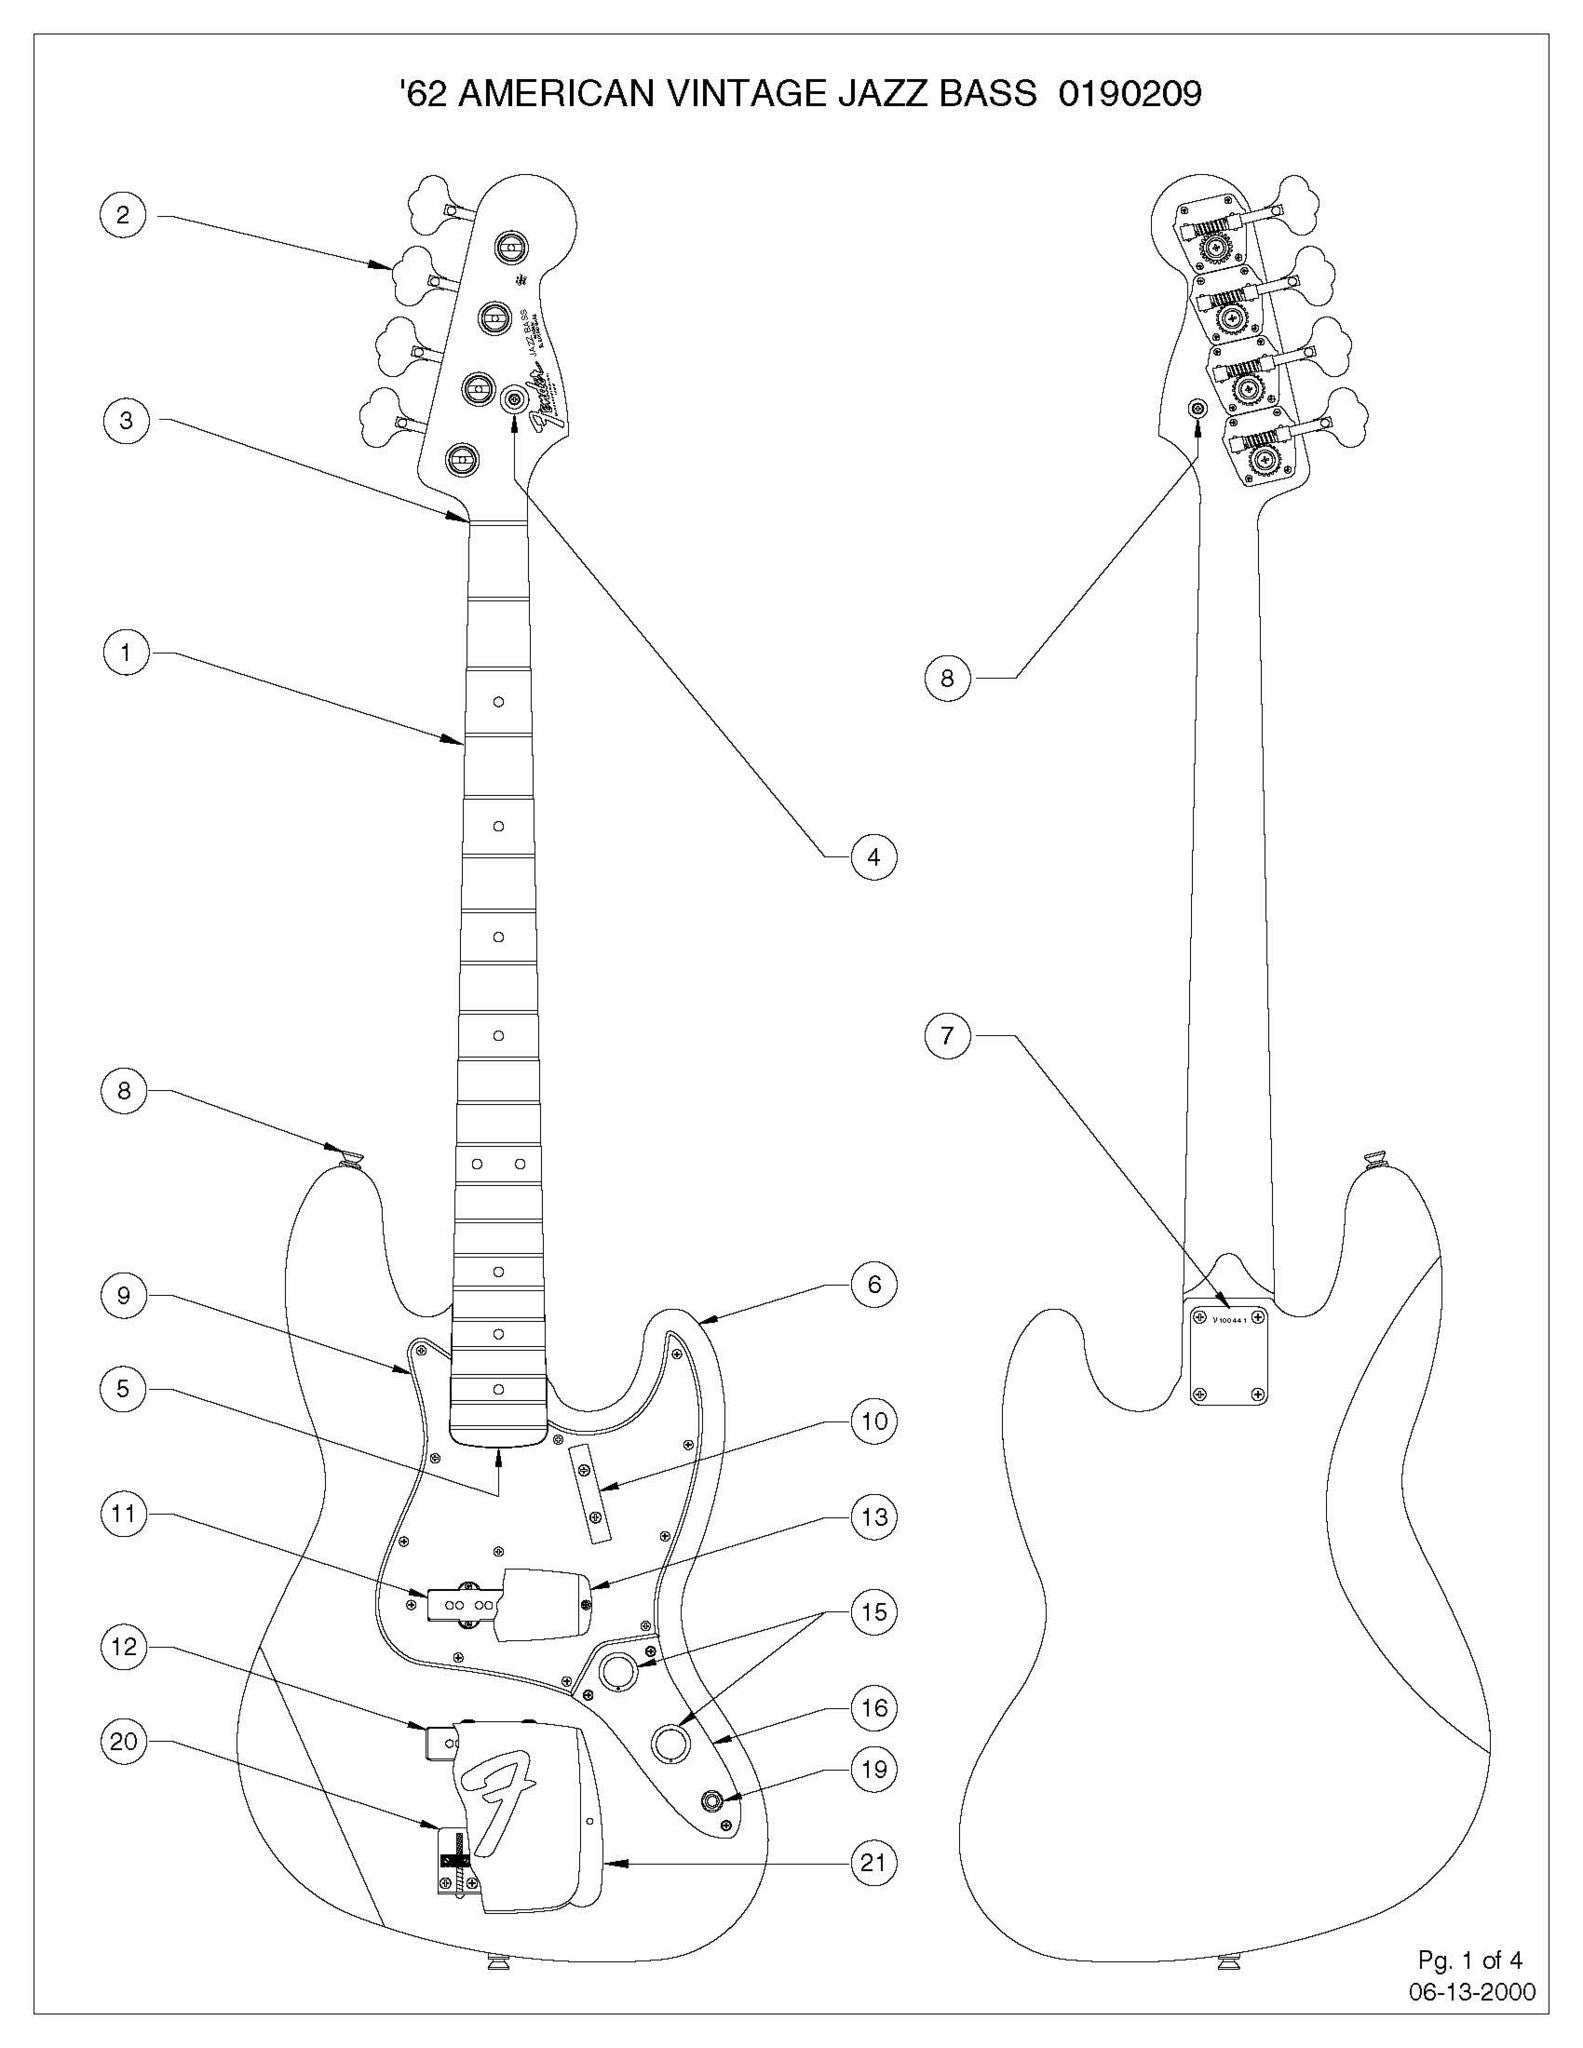 Fender 62 Jazz Bass Wiring Diagram Acoustic E Guitar Free Download Schematics Diagram62 New Era Of